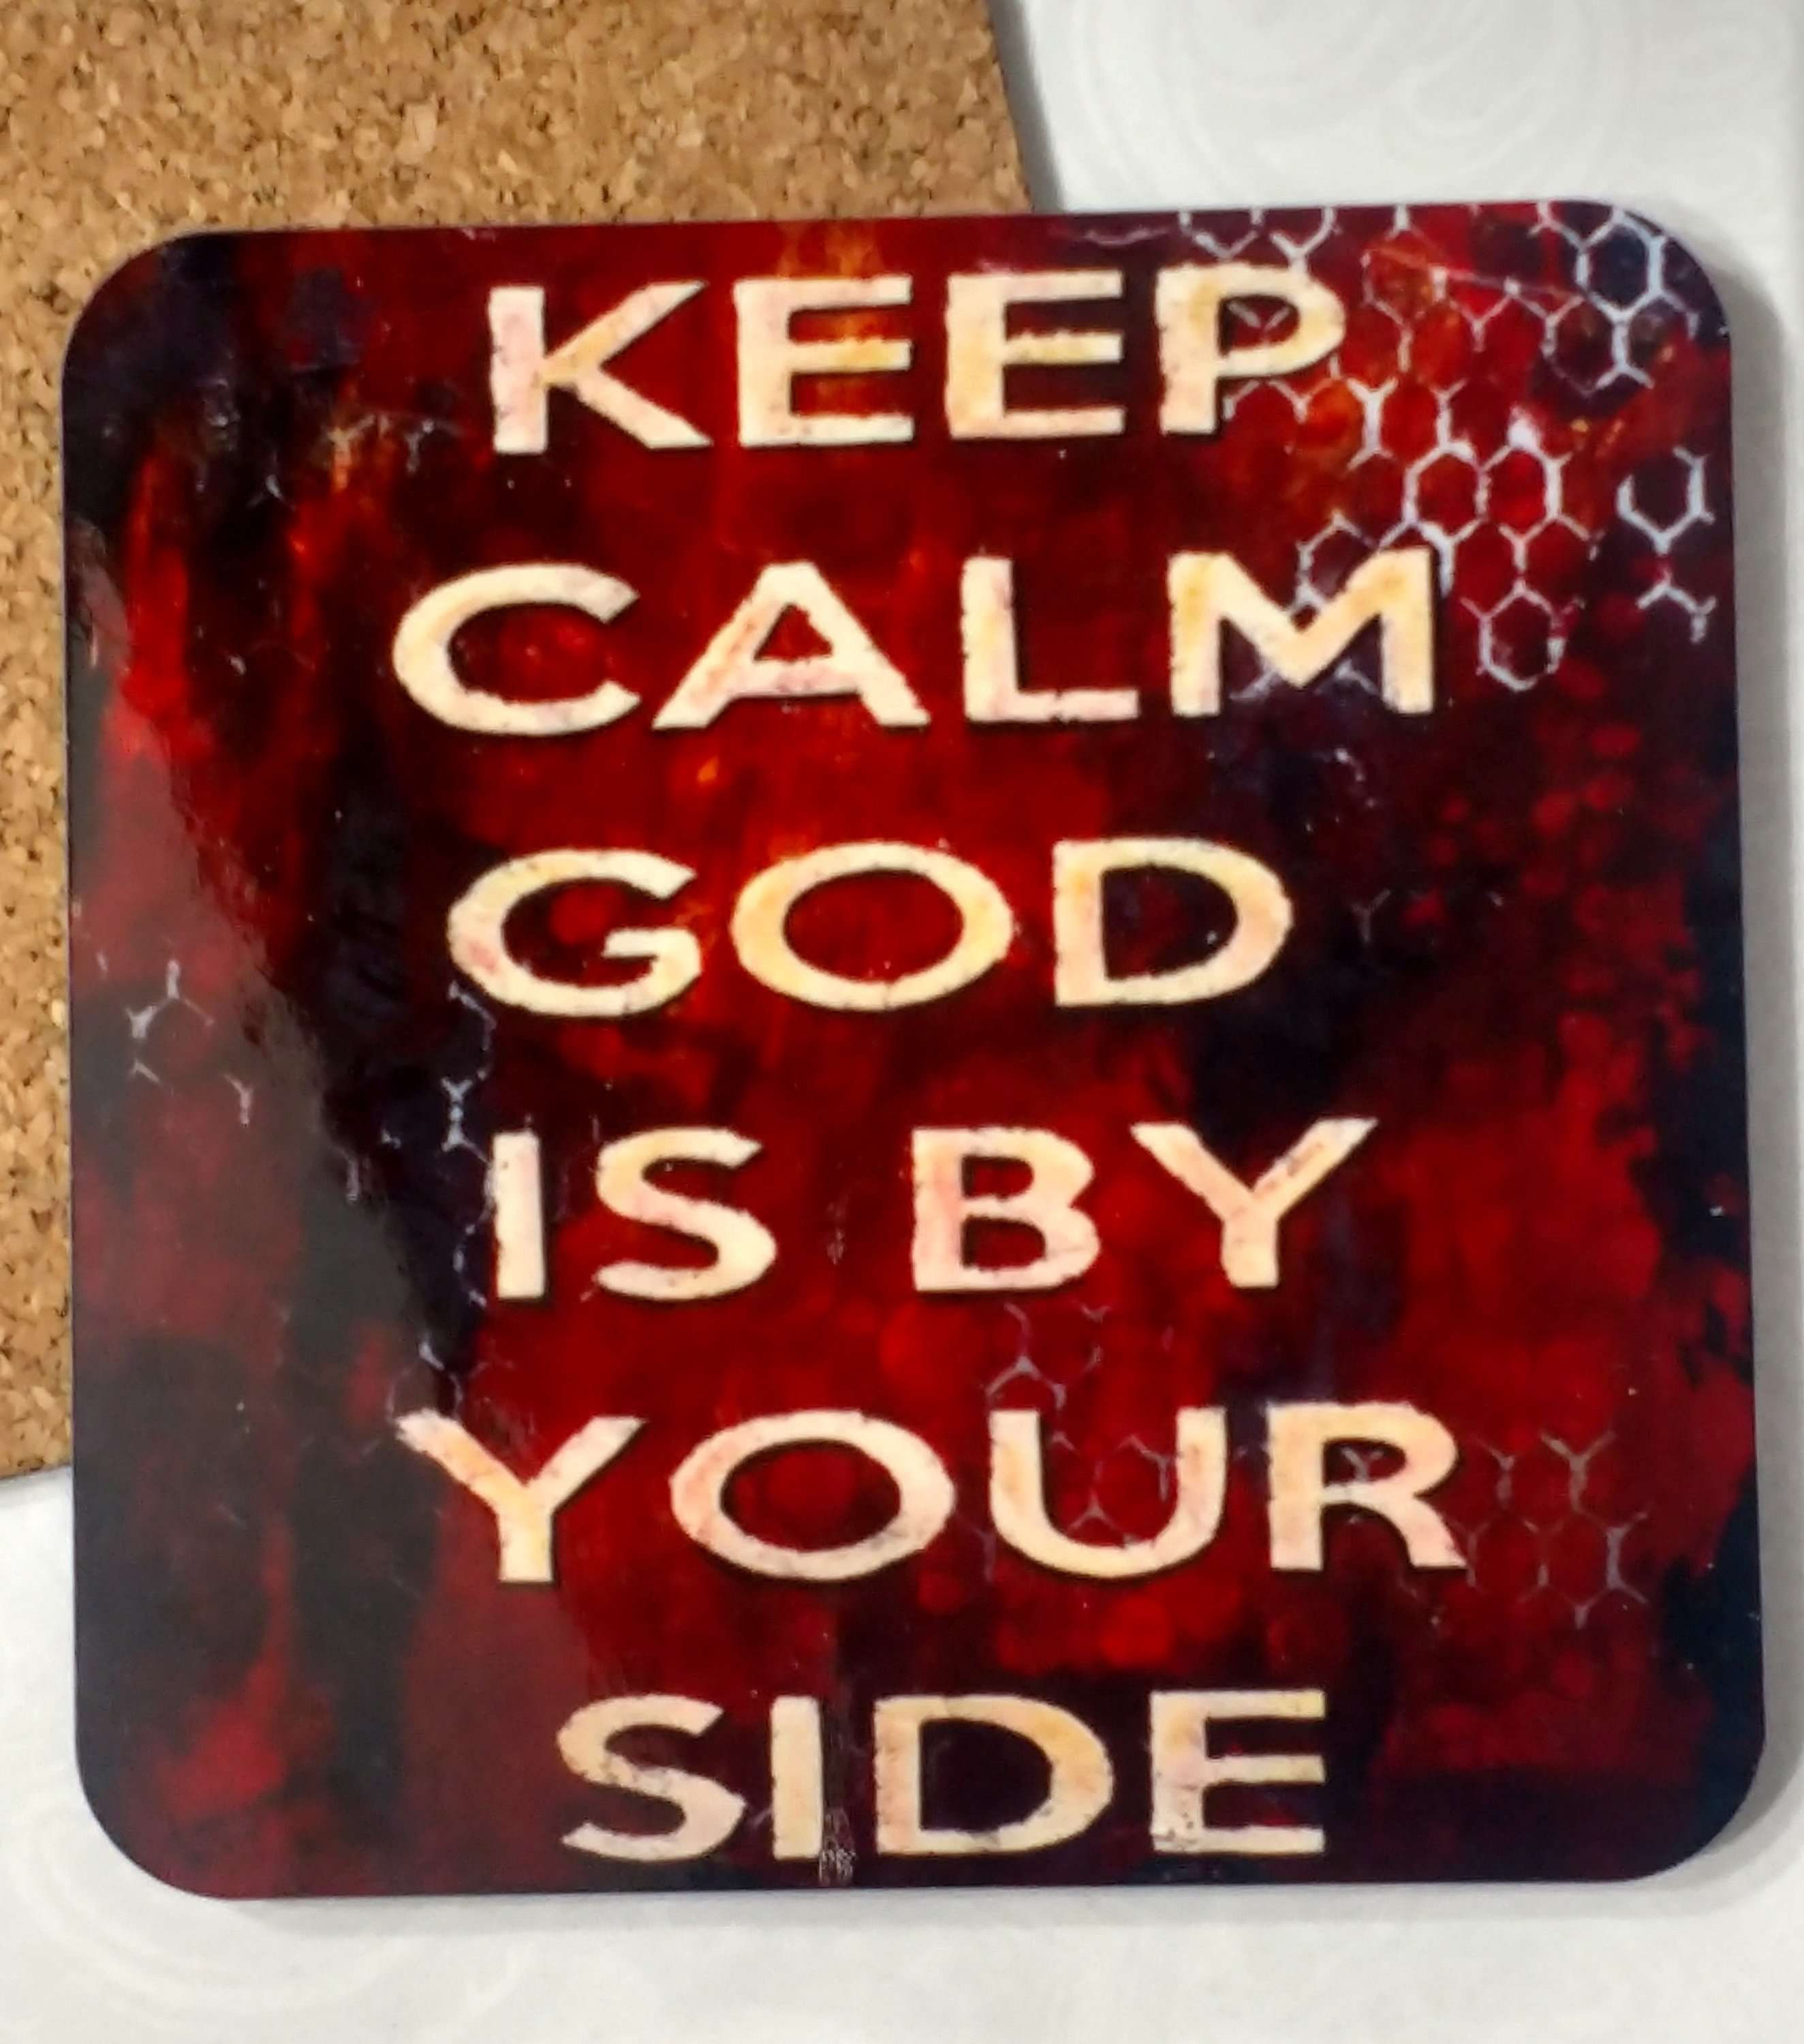 Keep Calm God is by Your Side Coaster by susan Walker Art